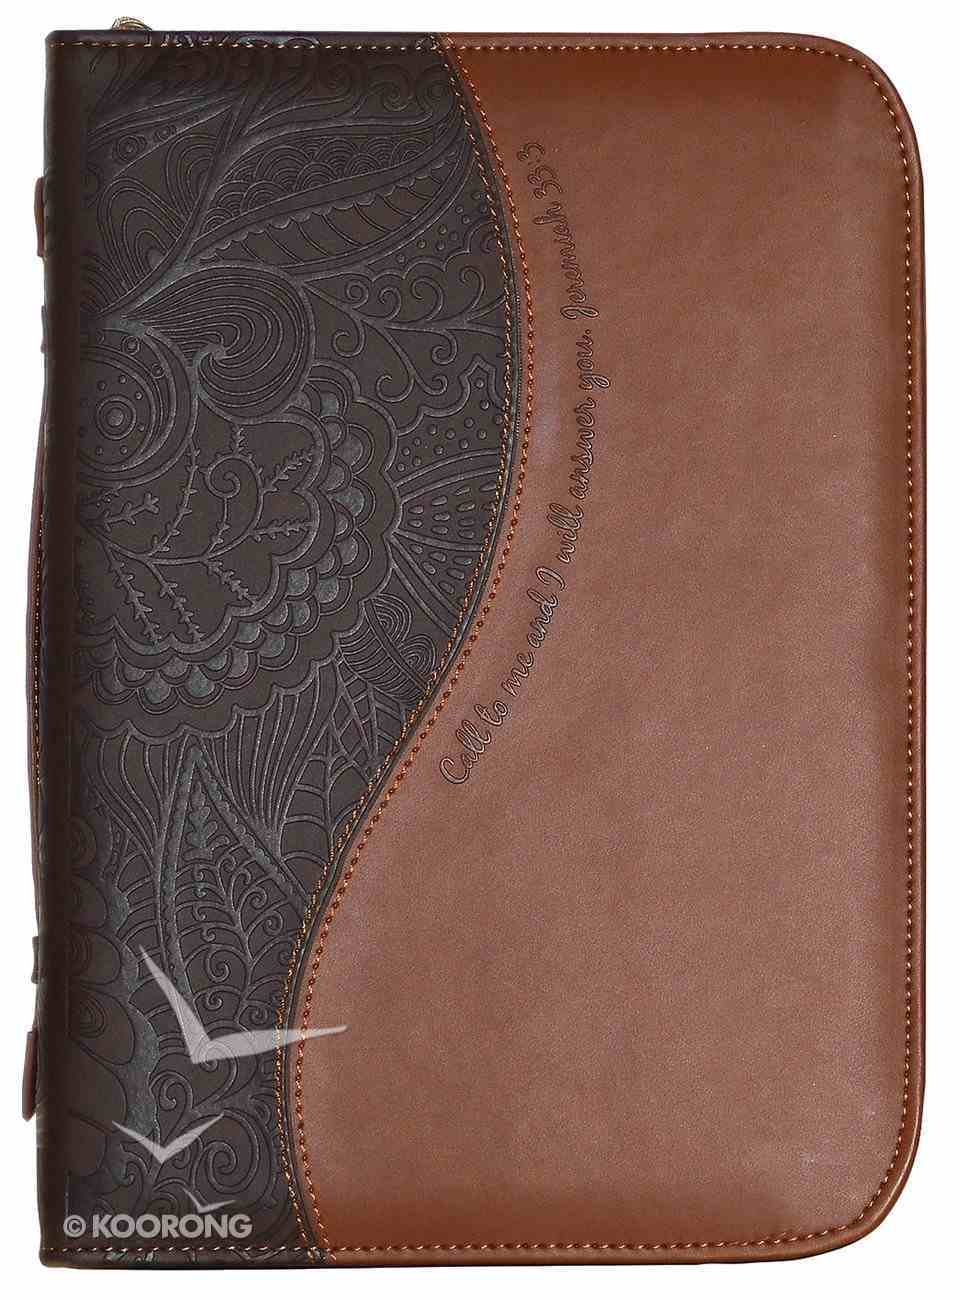 Bible Cover Divine Details: Large, Dark Brown/Tan, Jer 33:3 Bible Cover